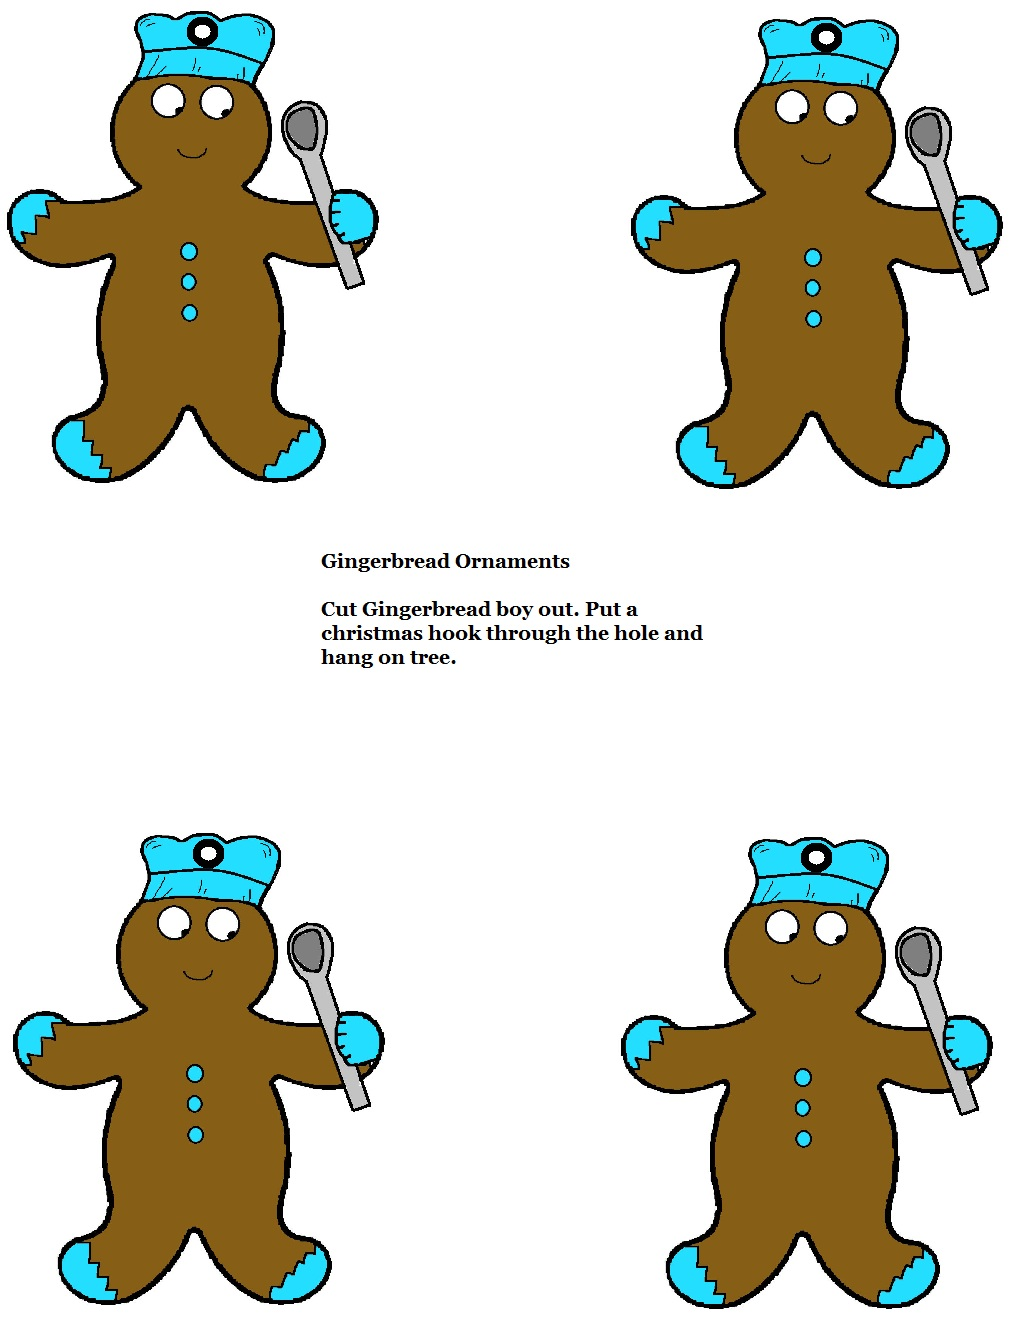 Free Printable Cutout Template Gingerbread Christmas Ornaments For Kids To Do in Sunday School or Children's Church Class by Church House Collection